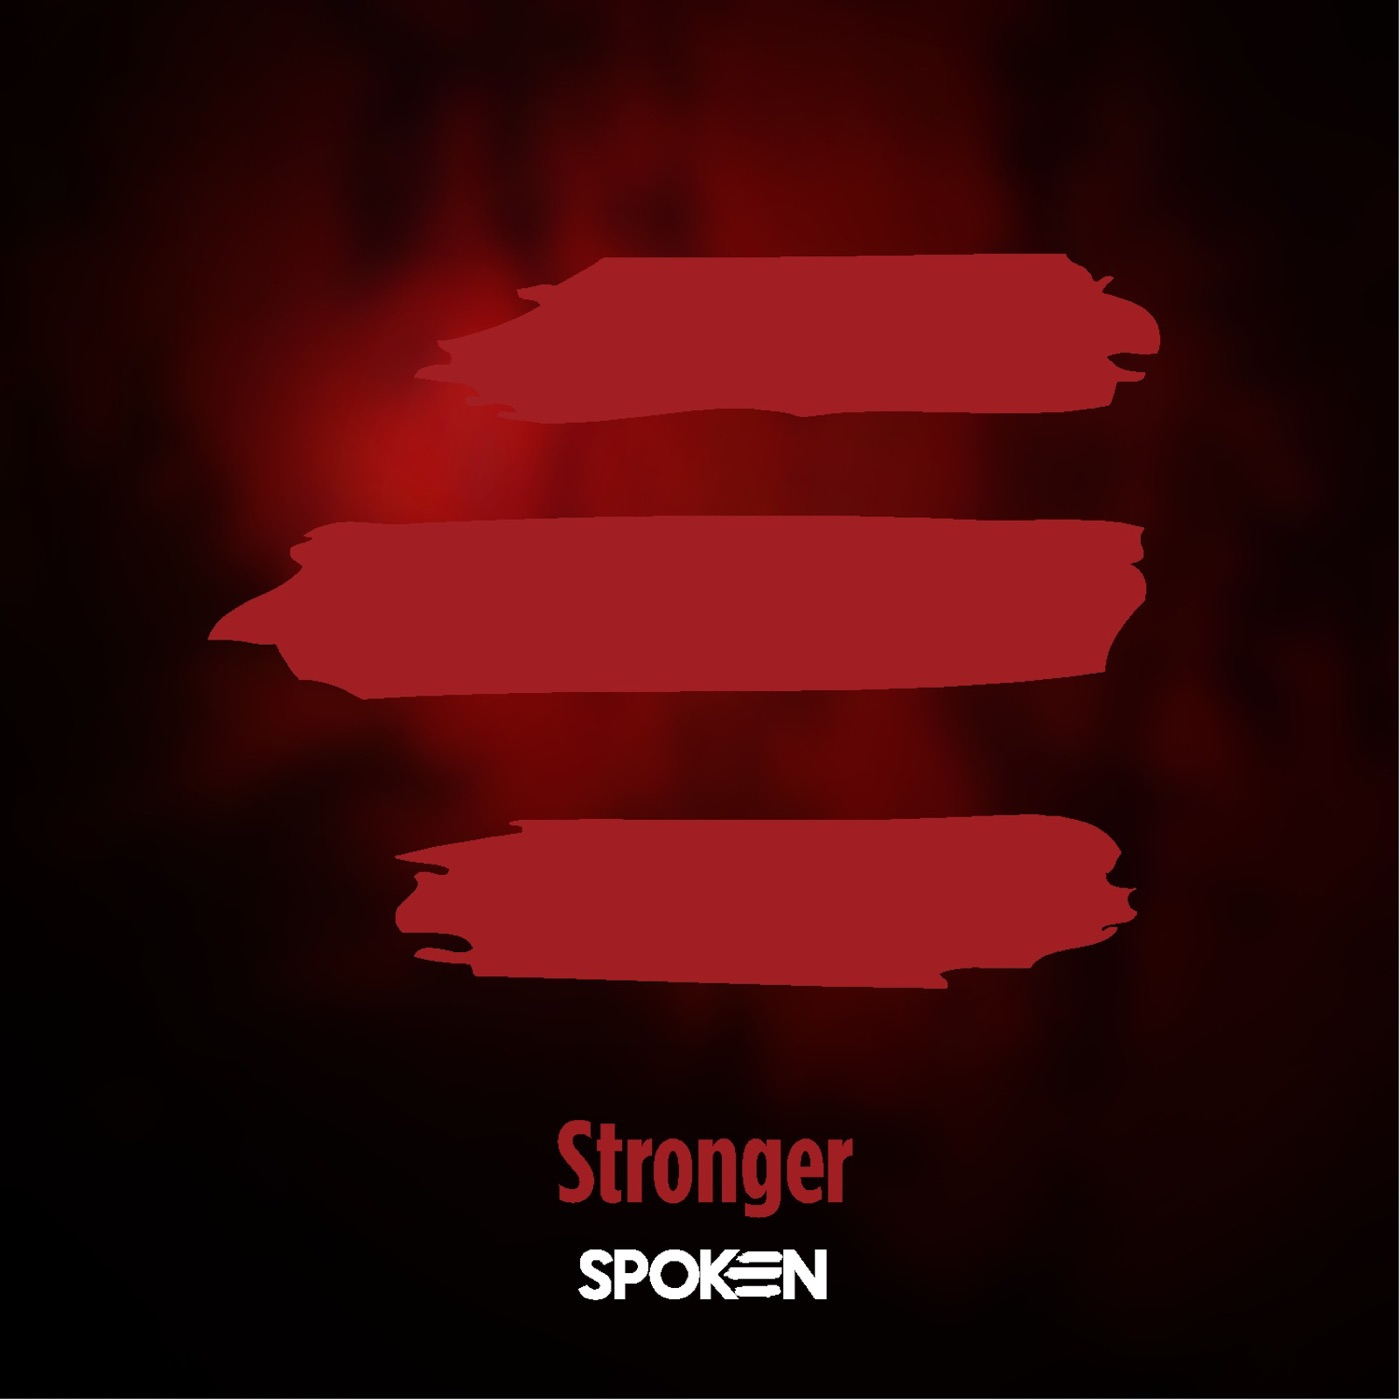 Spoken - Stronger [single] (2017)